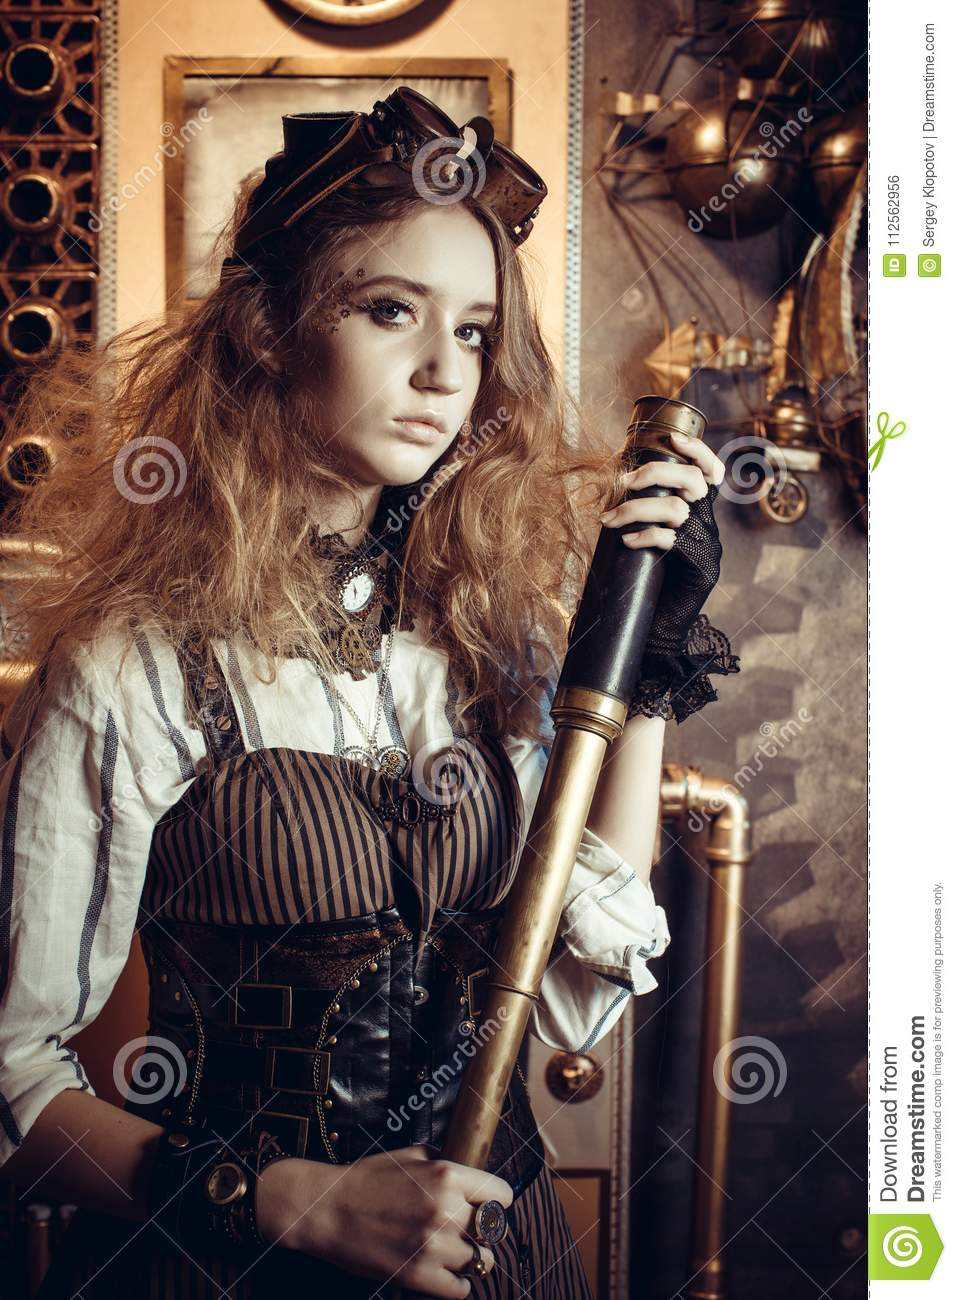 4 212 Steampunk Woman Photos Free Royalty Free Stock Photos From Dreamstime